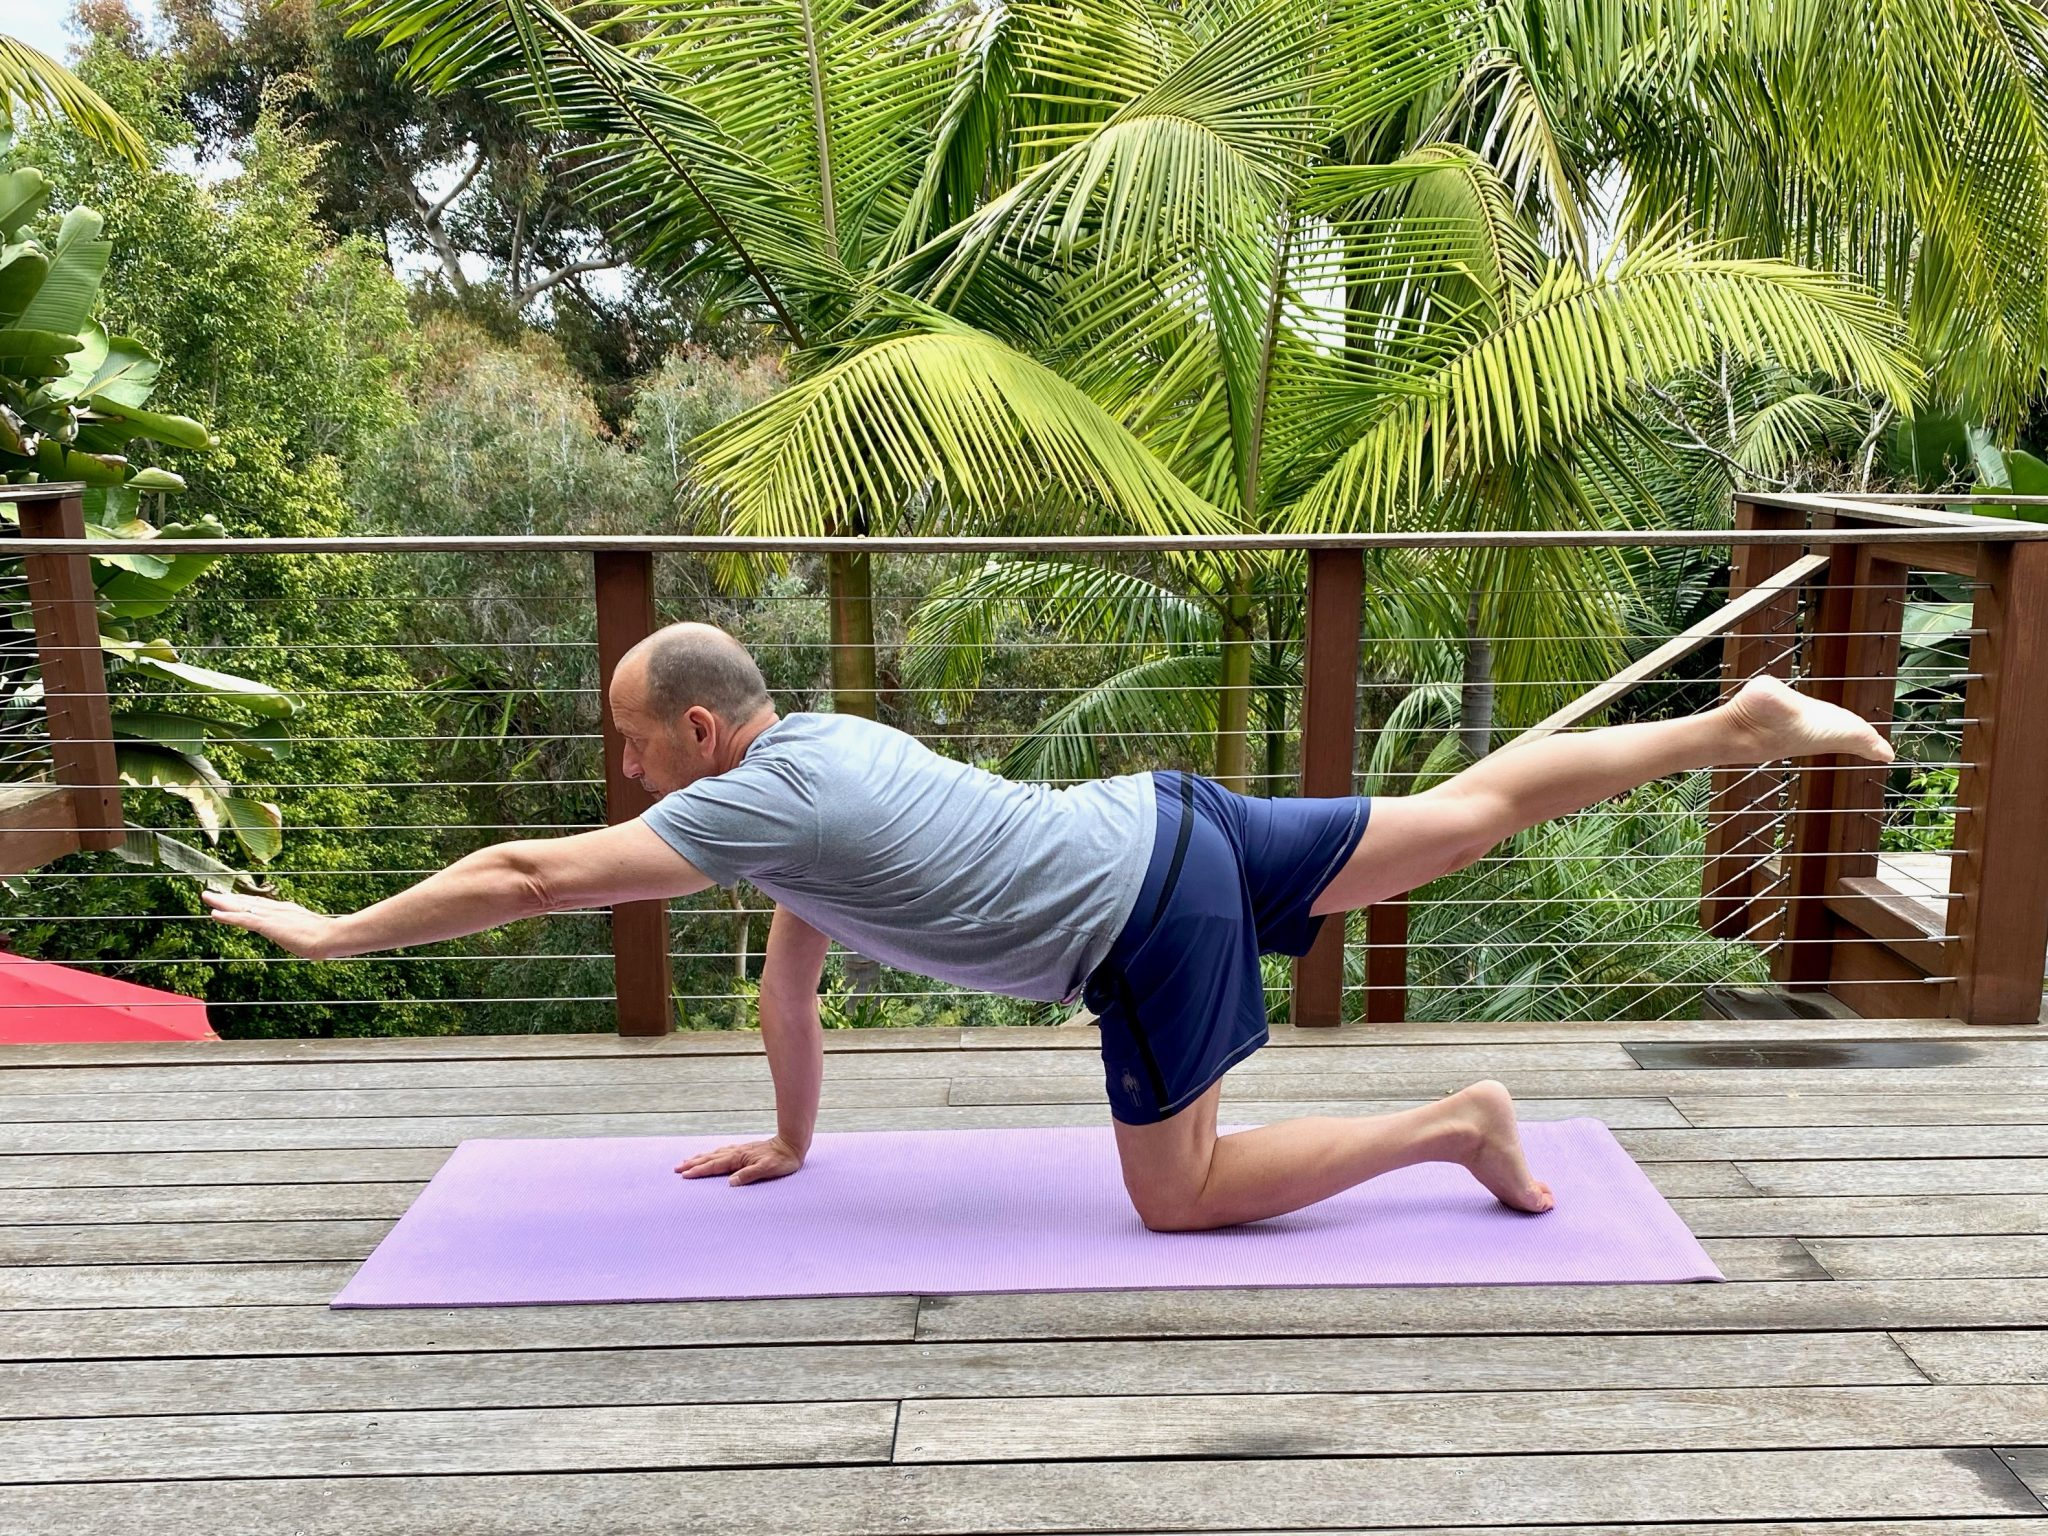 Man doing yoga on deck with tropical setting